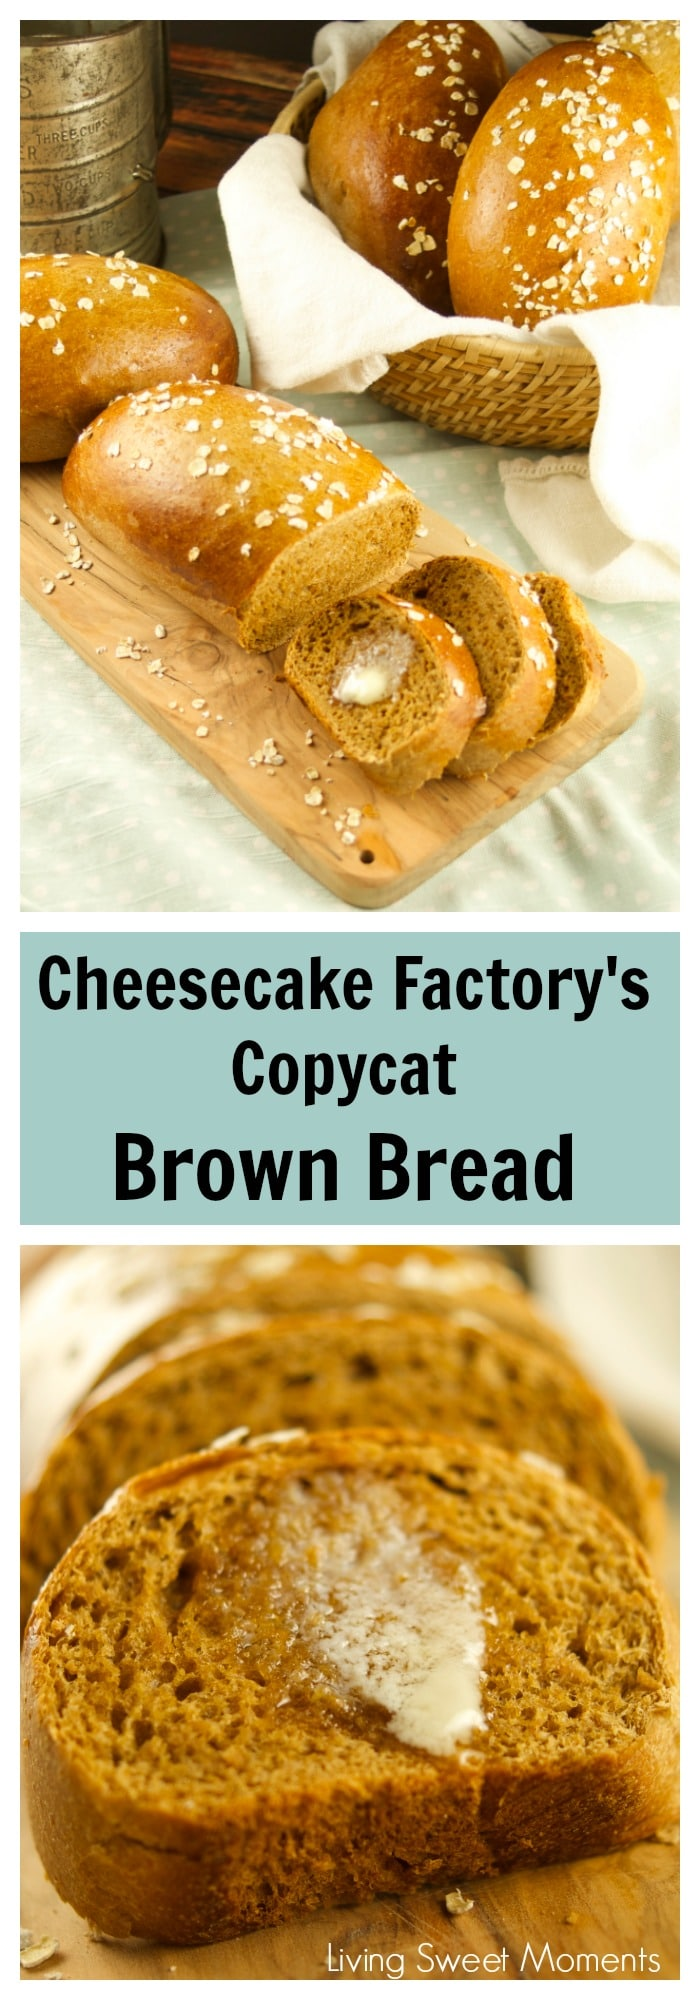 Check out how easy it is to make Copycat Cheesecake Factory Brown Bread with honey and oats. Delicious, soft and just like the real thing. Yum!